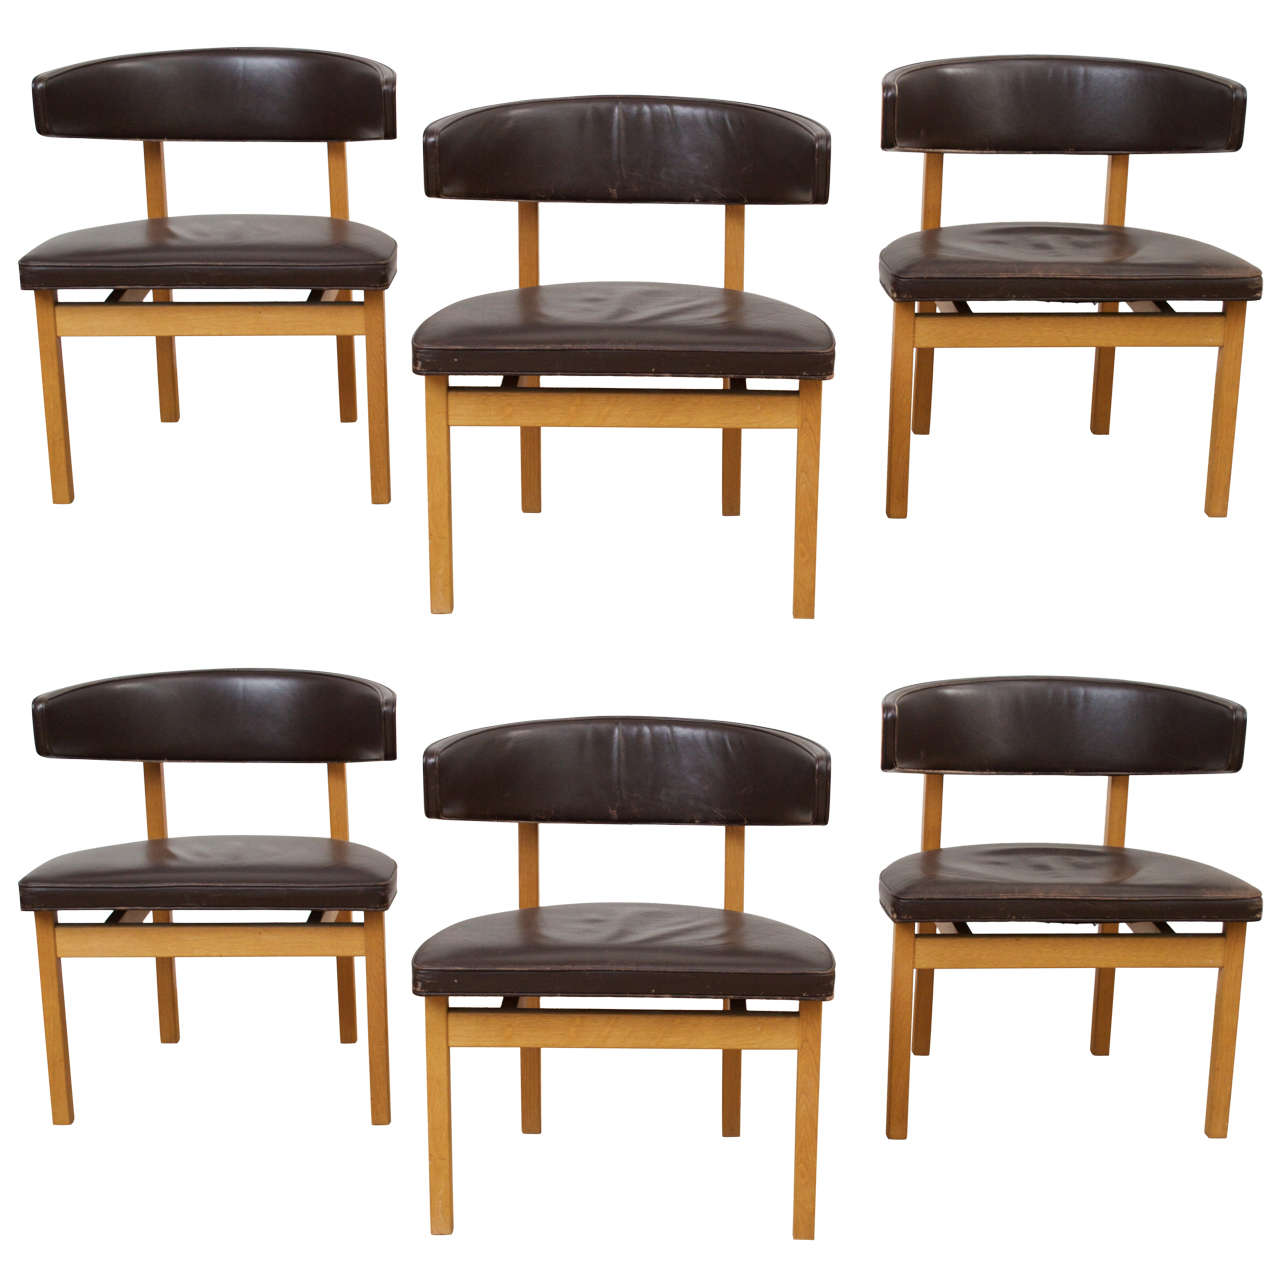 Brown conference chairs - B Rge Mogensen Conference Or Dining Chairs 1